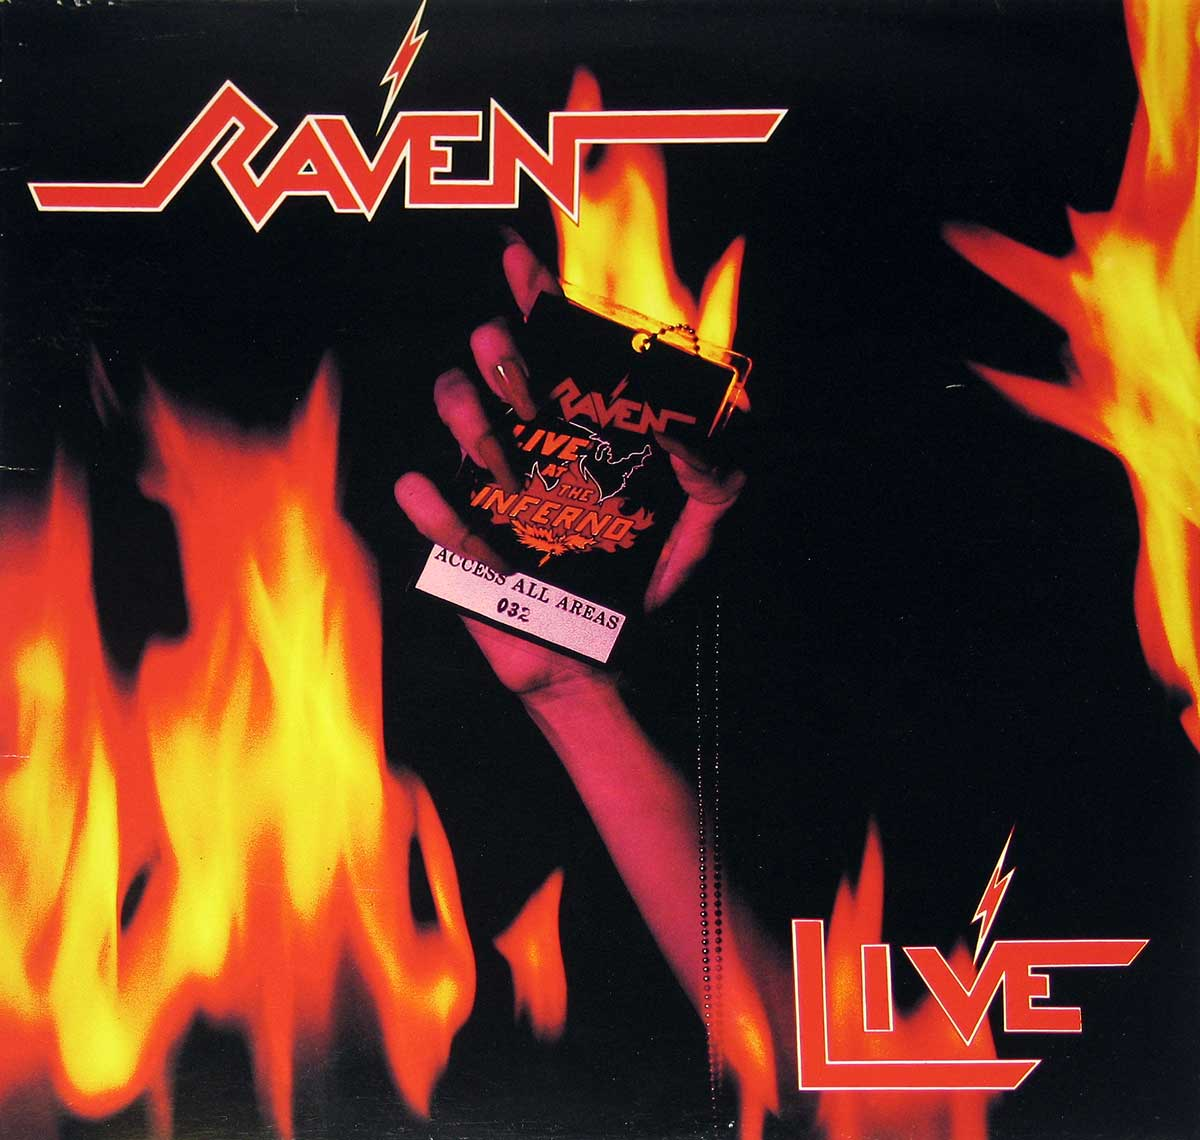 large photo of the album front cover of: Raven  Live at the Inferno